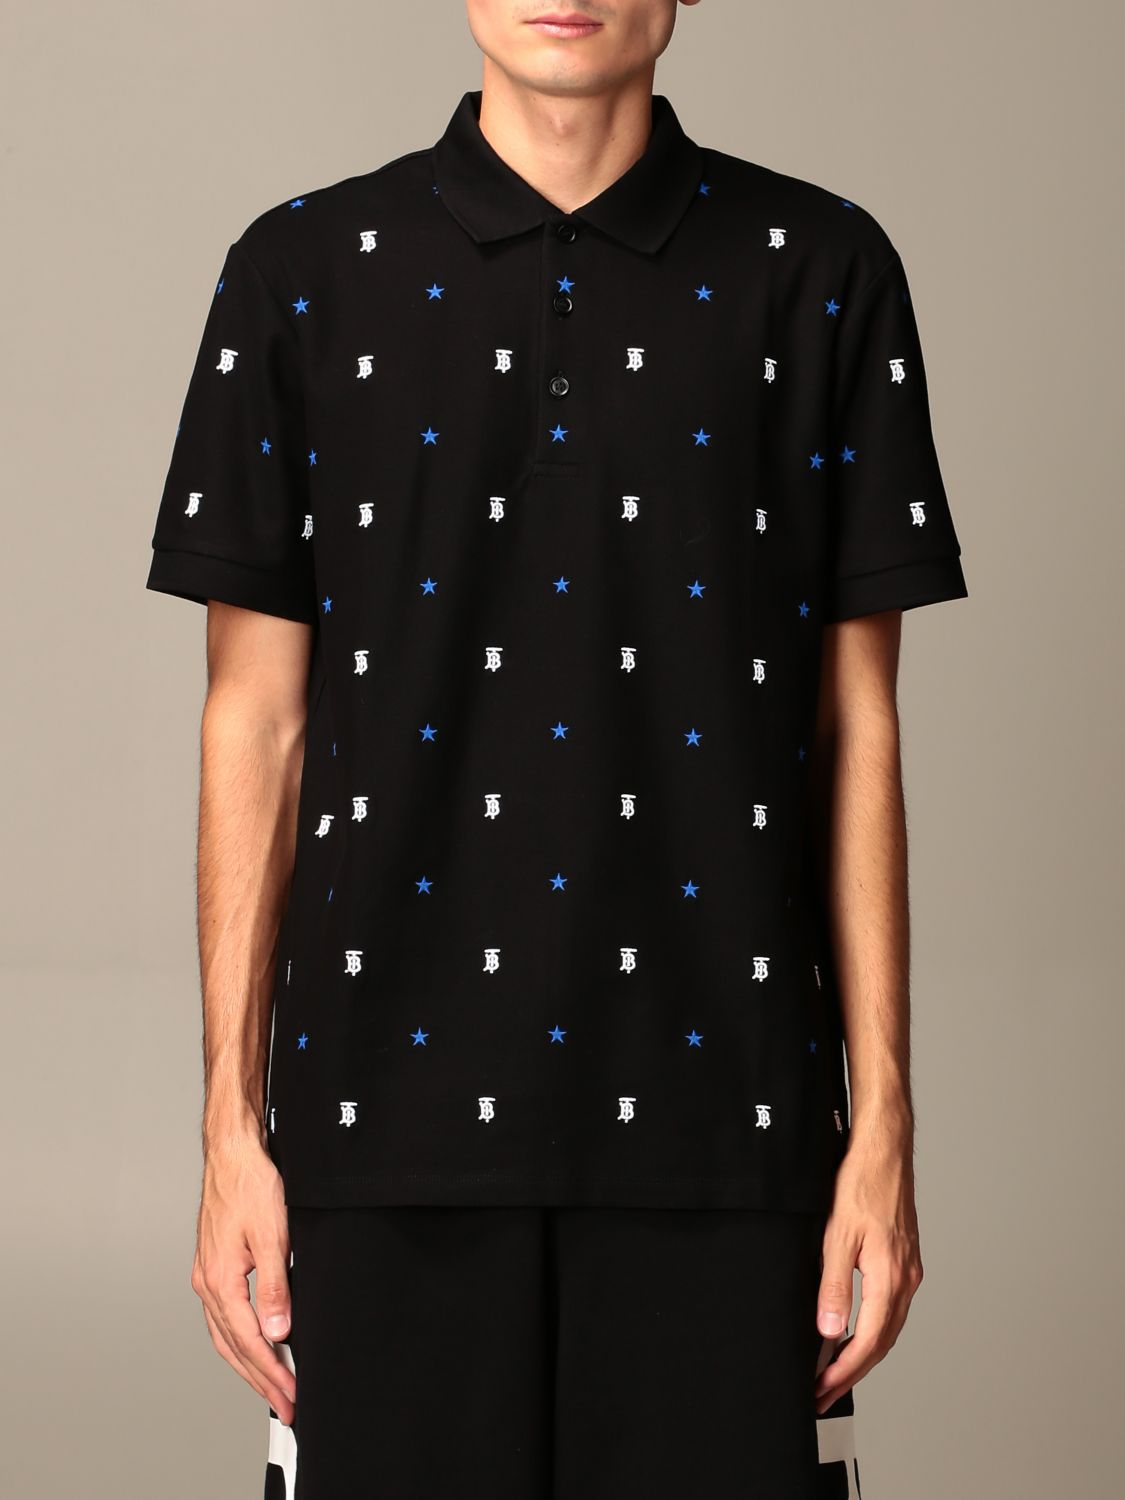 Polo shirt Burberry: Elsford Burberry polo shirt with all-over embroidered TB and star logo black 1